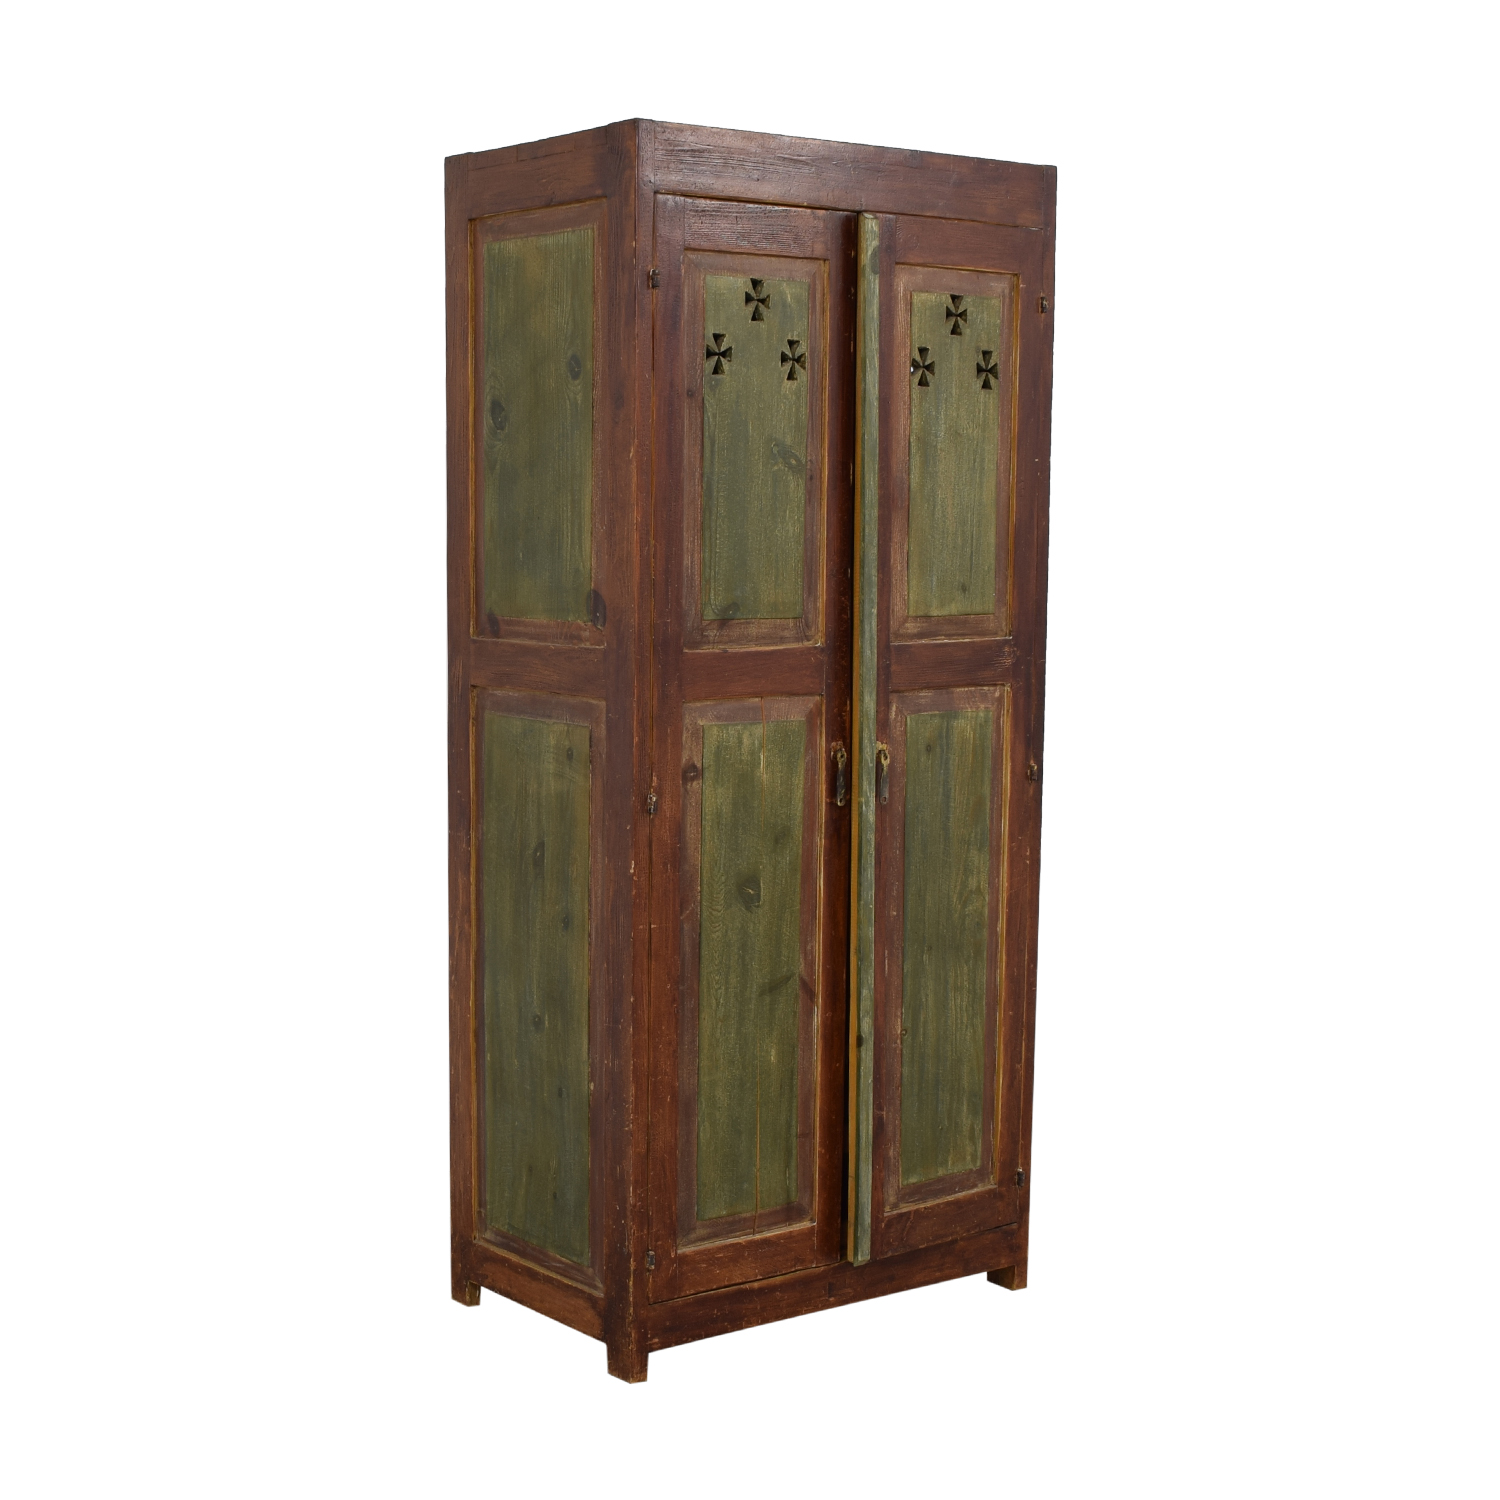 Distressed Wood Country Bar Cabinet Armoire with Interior Mirrors on sale